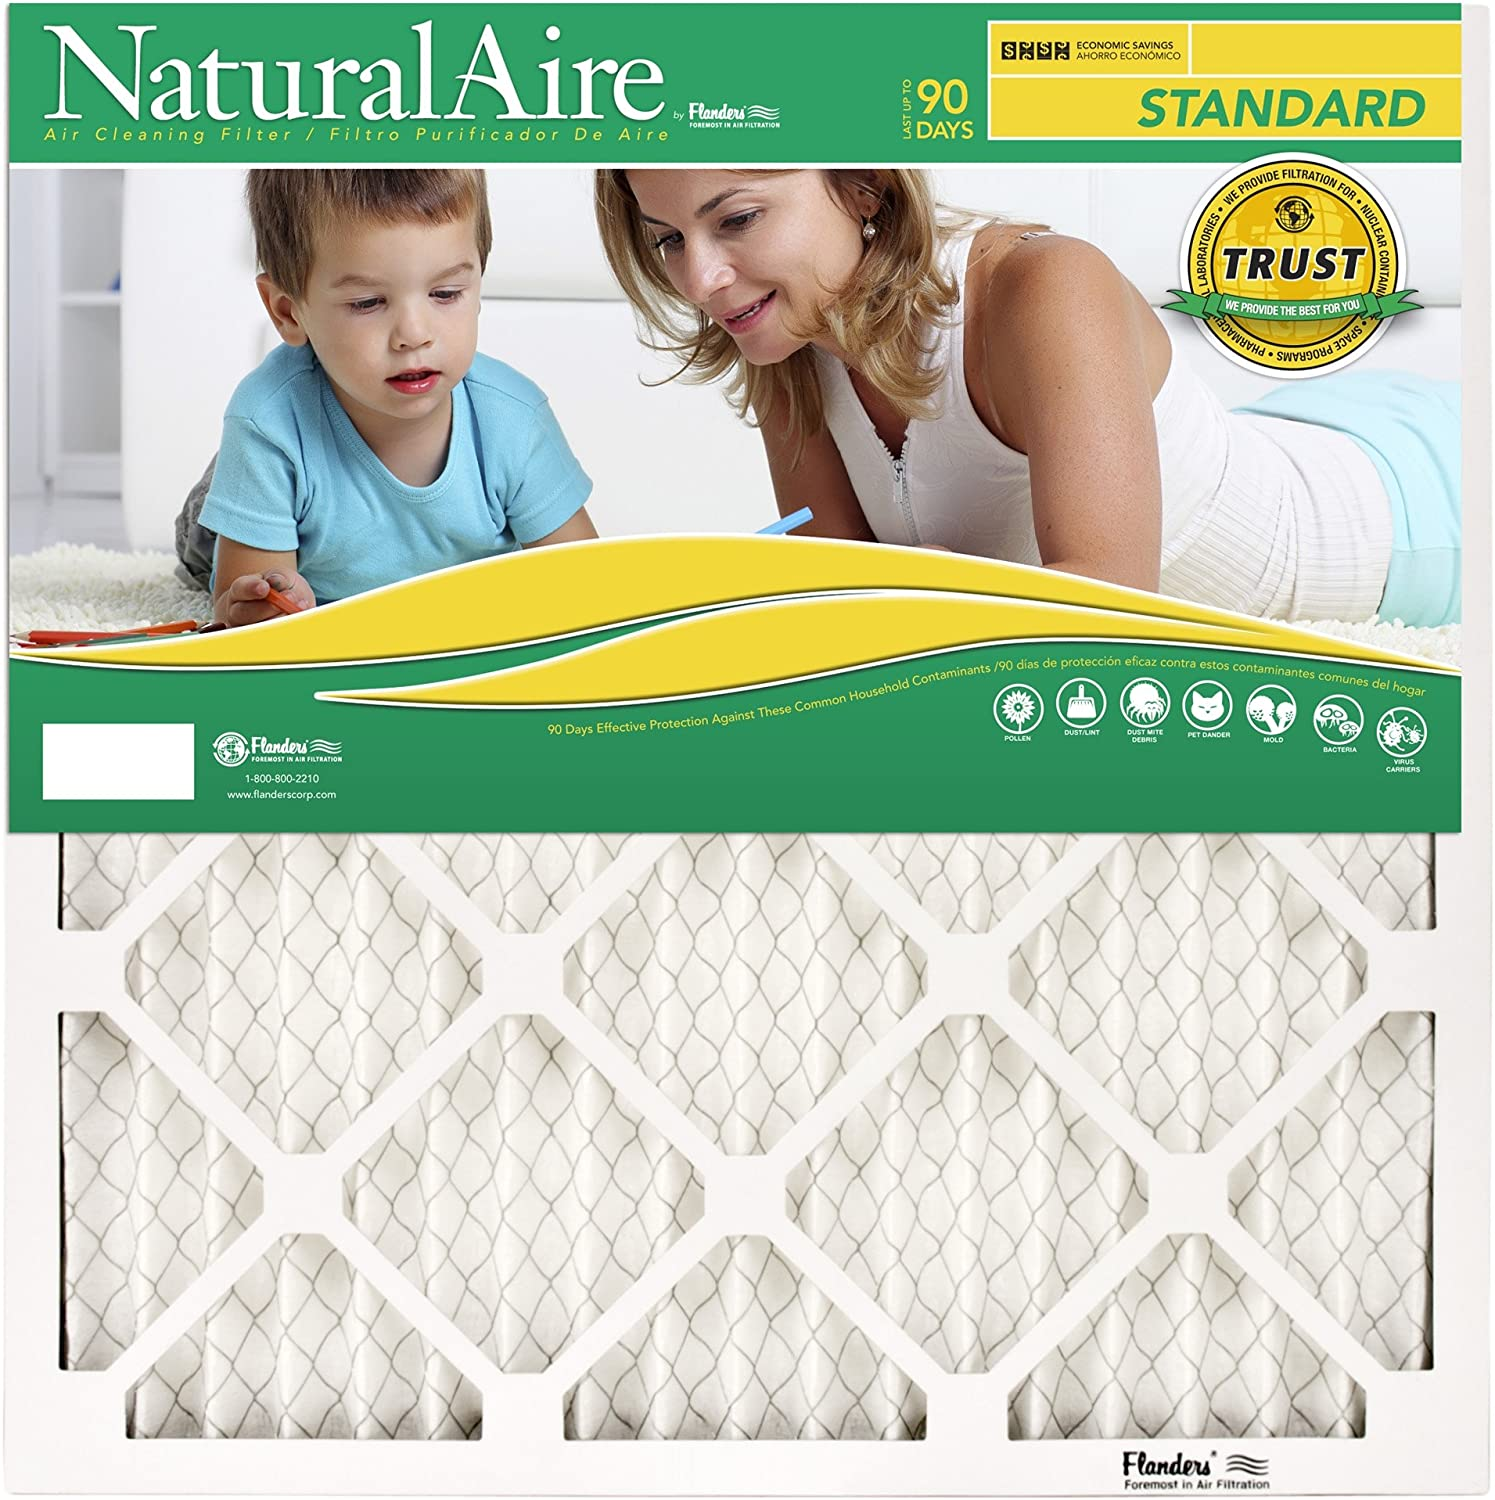 NaturalAire Standard Air Filter, MERV 8, 18 x 30, 1-inch, 12-Pack